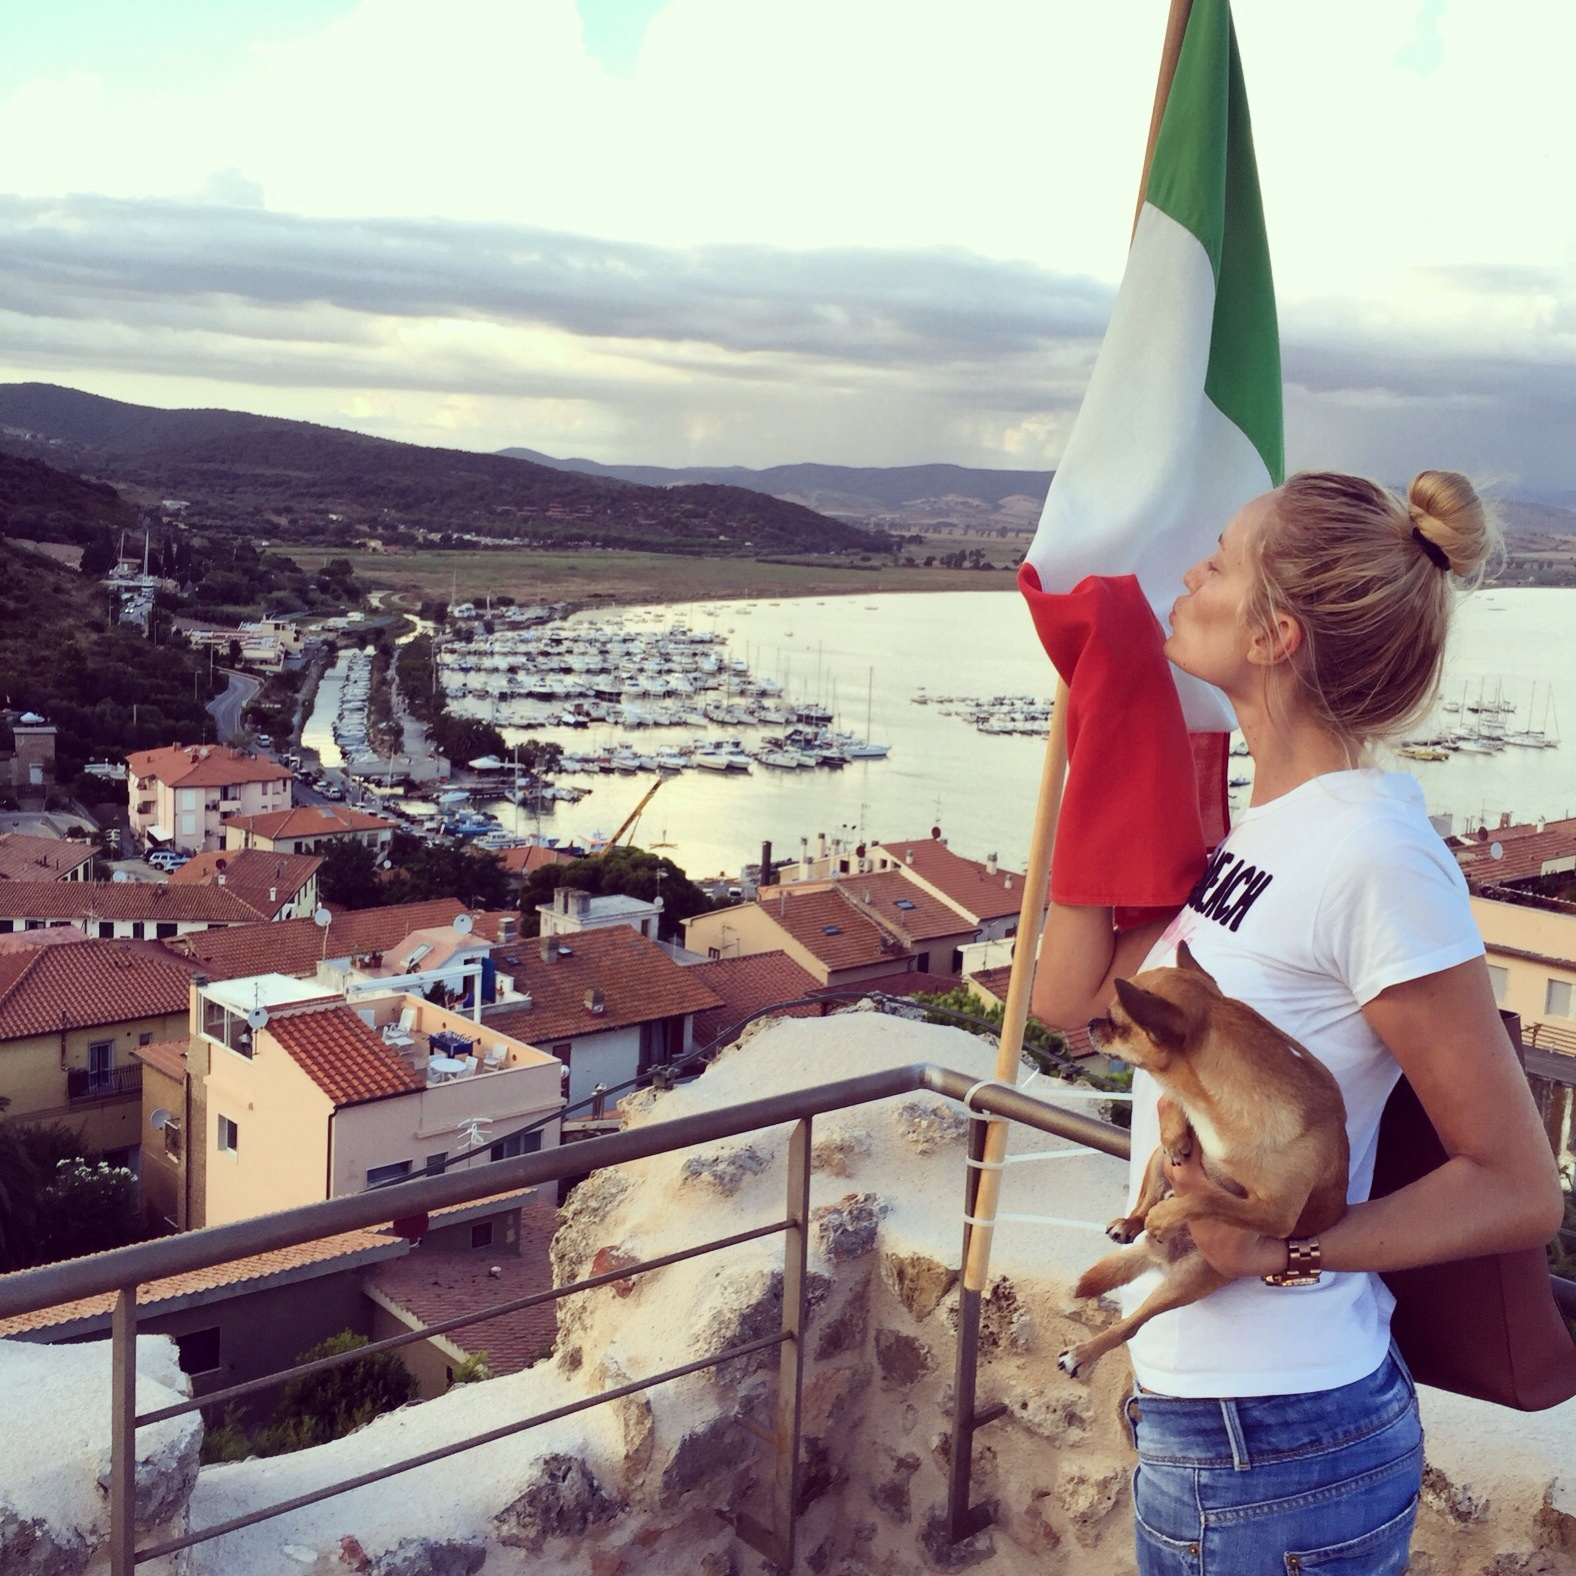 Italia, ti ho ed avrò sempre nel cuore. Italy, I have and will always have you in my heart. #Talamone